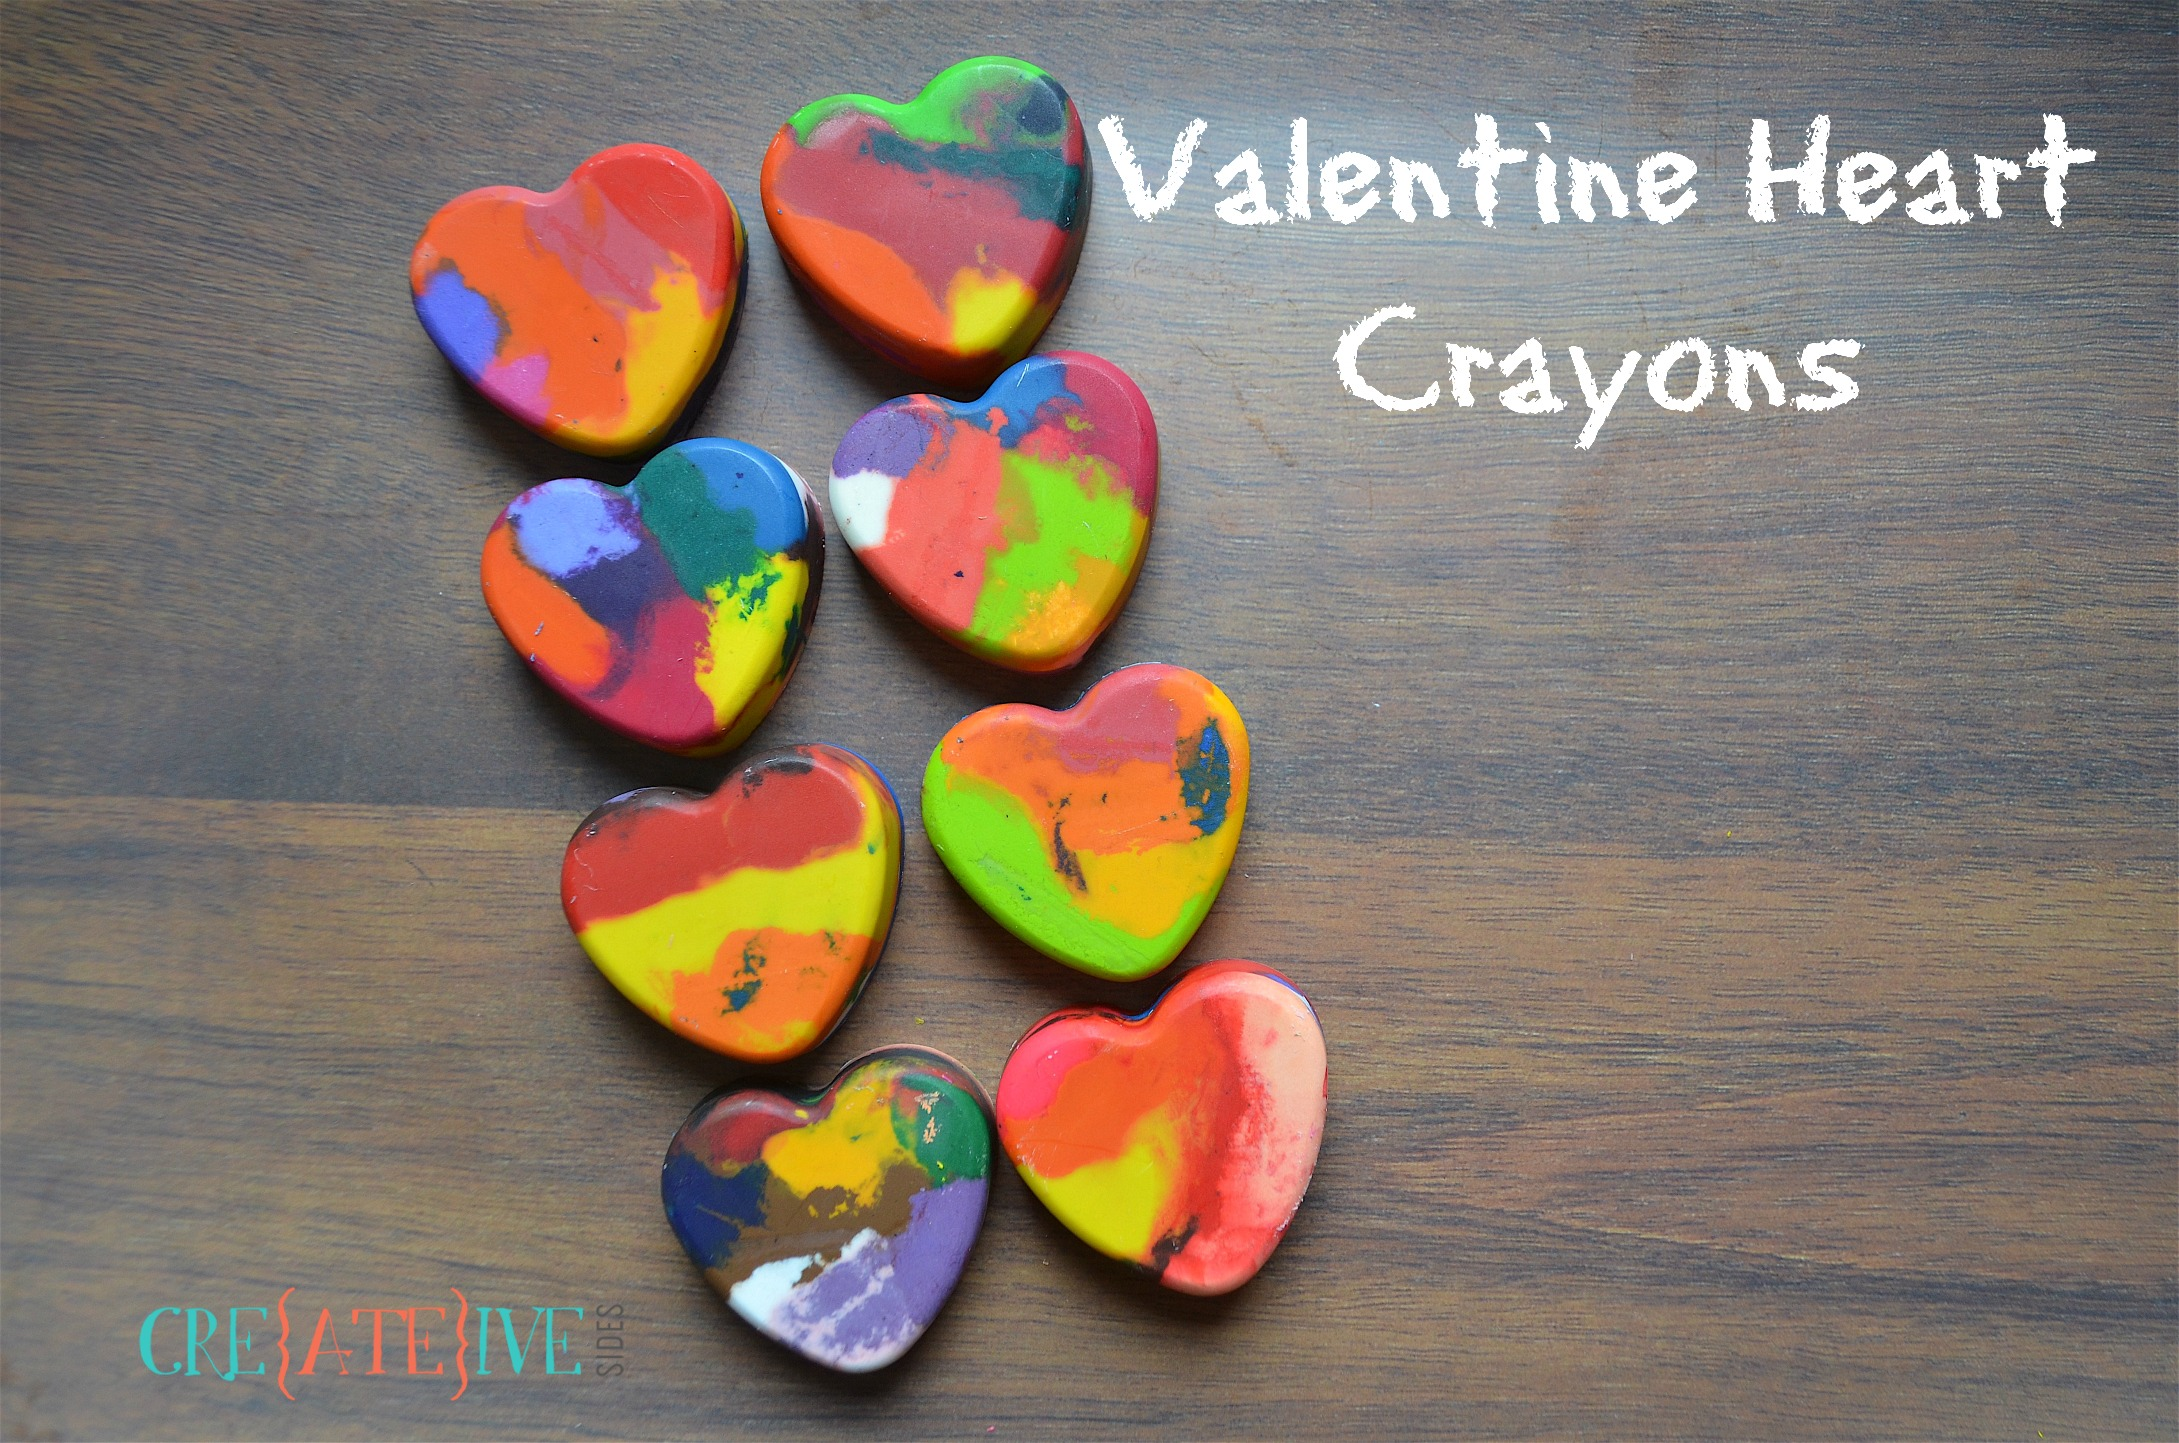 Valentine Heart Crayon DIY - Feature